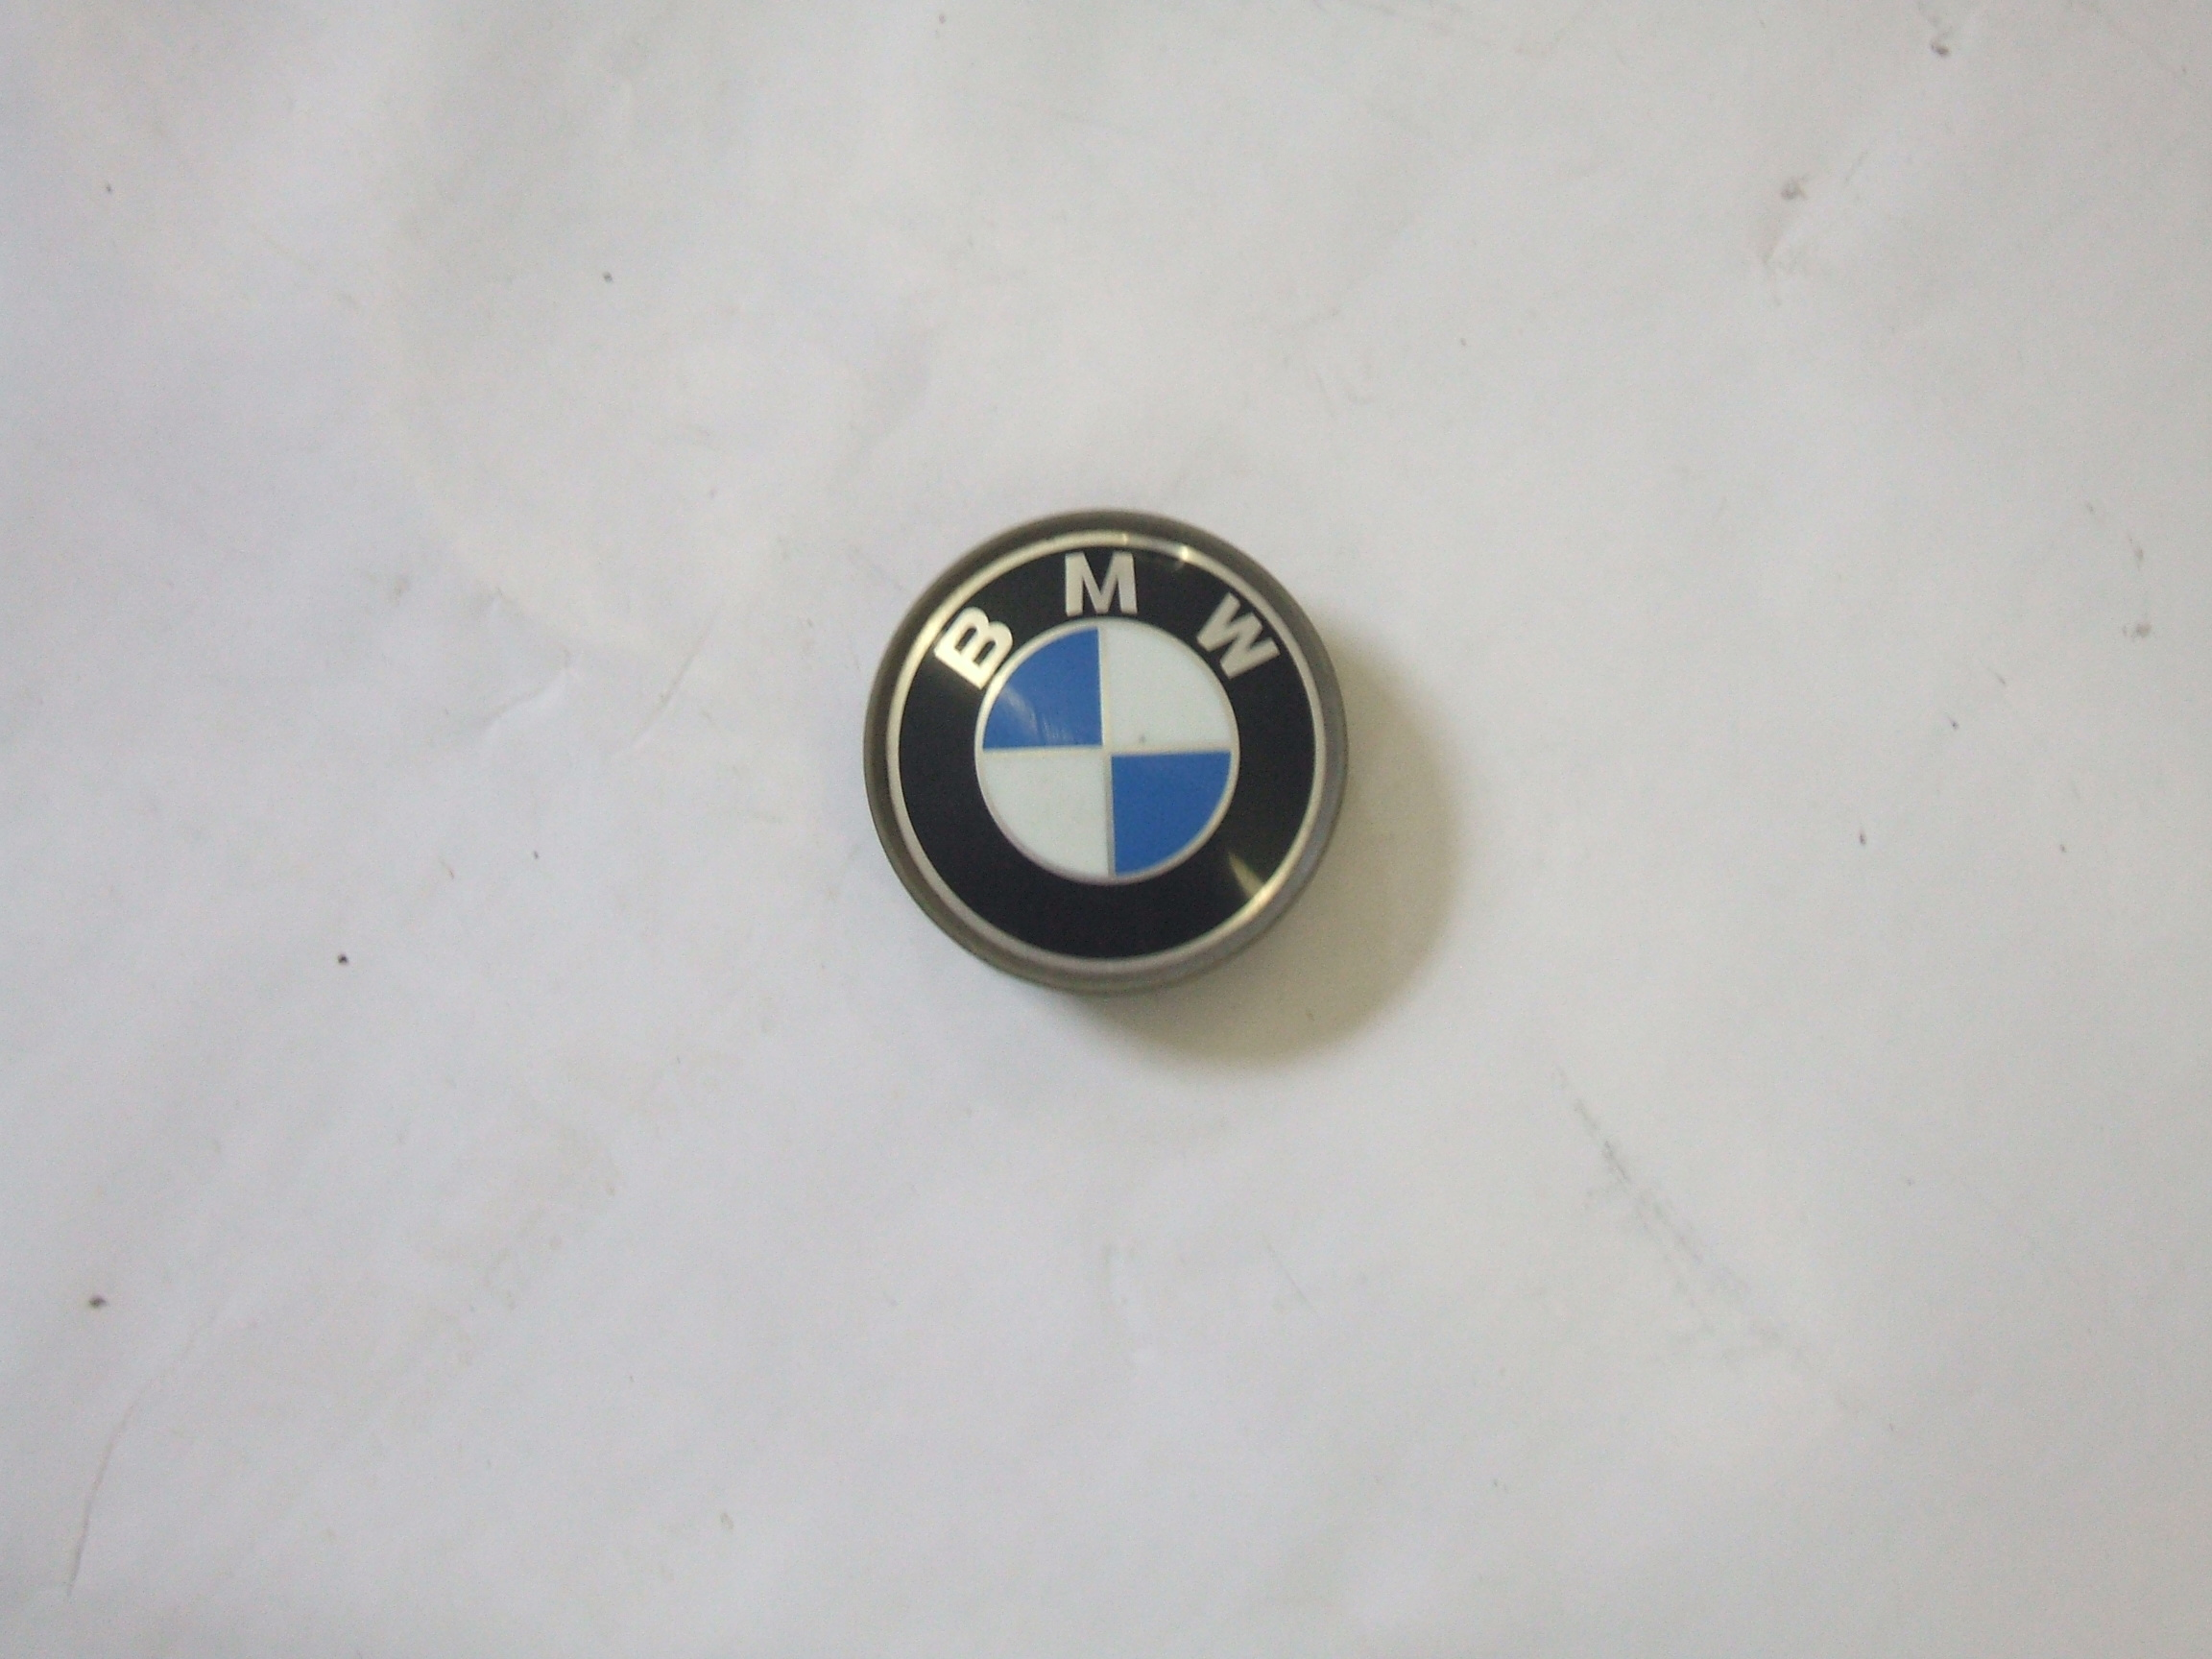 p bmw n used center or wheel page cap for series caps sale catalog